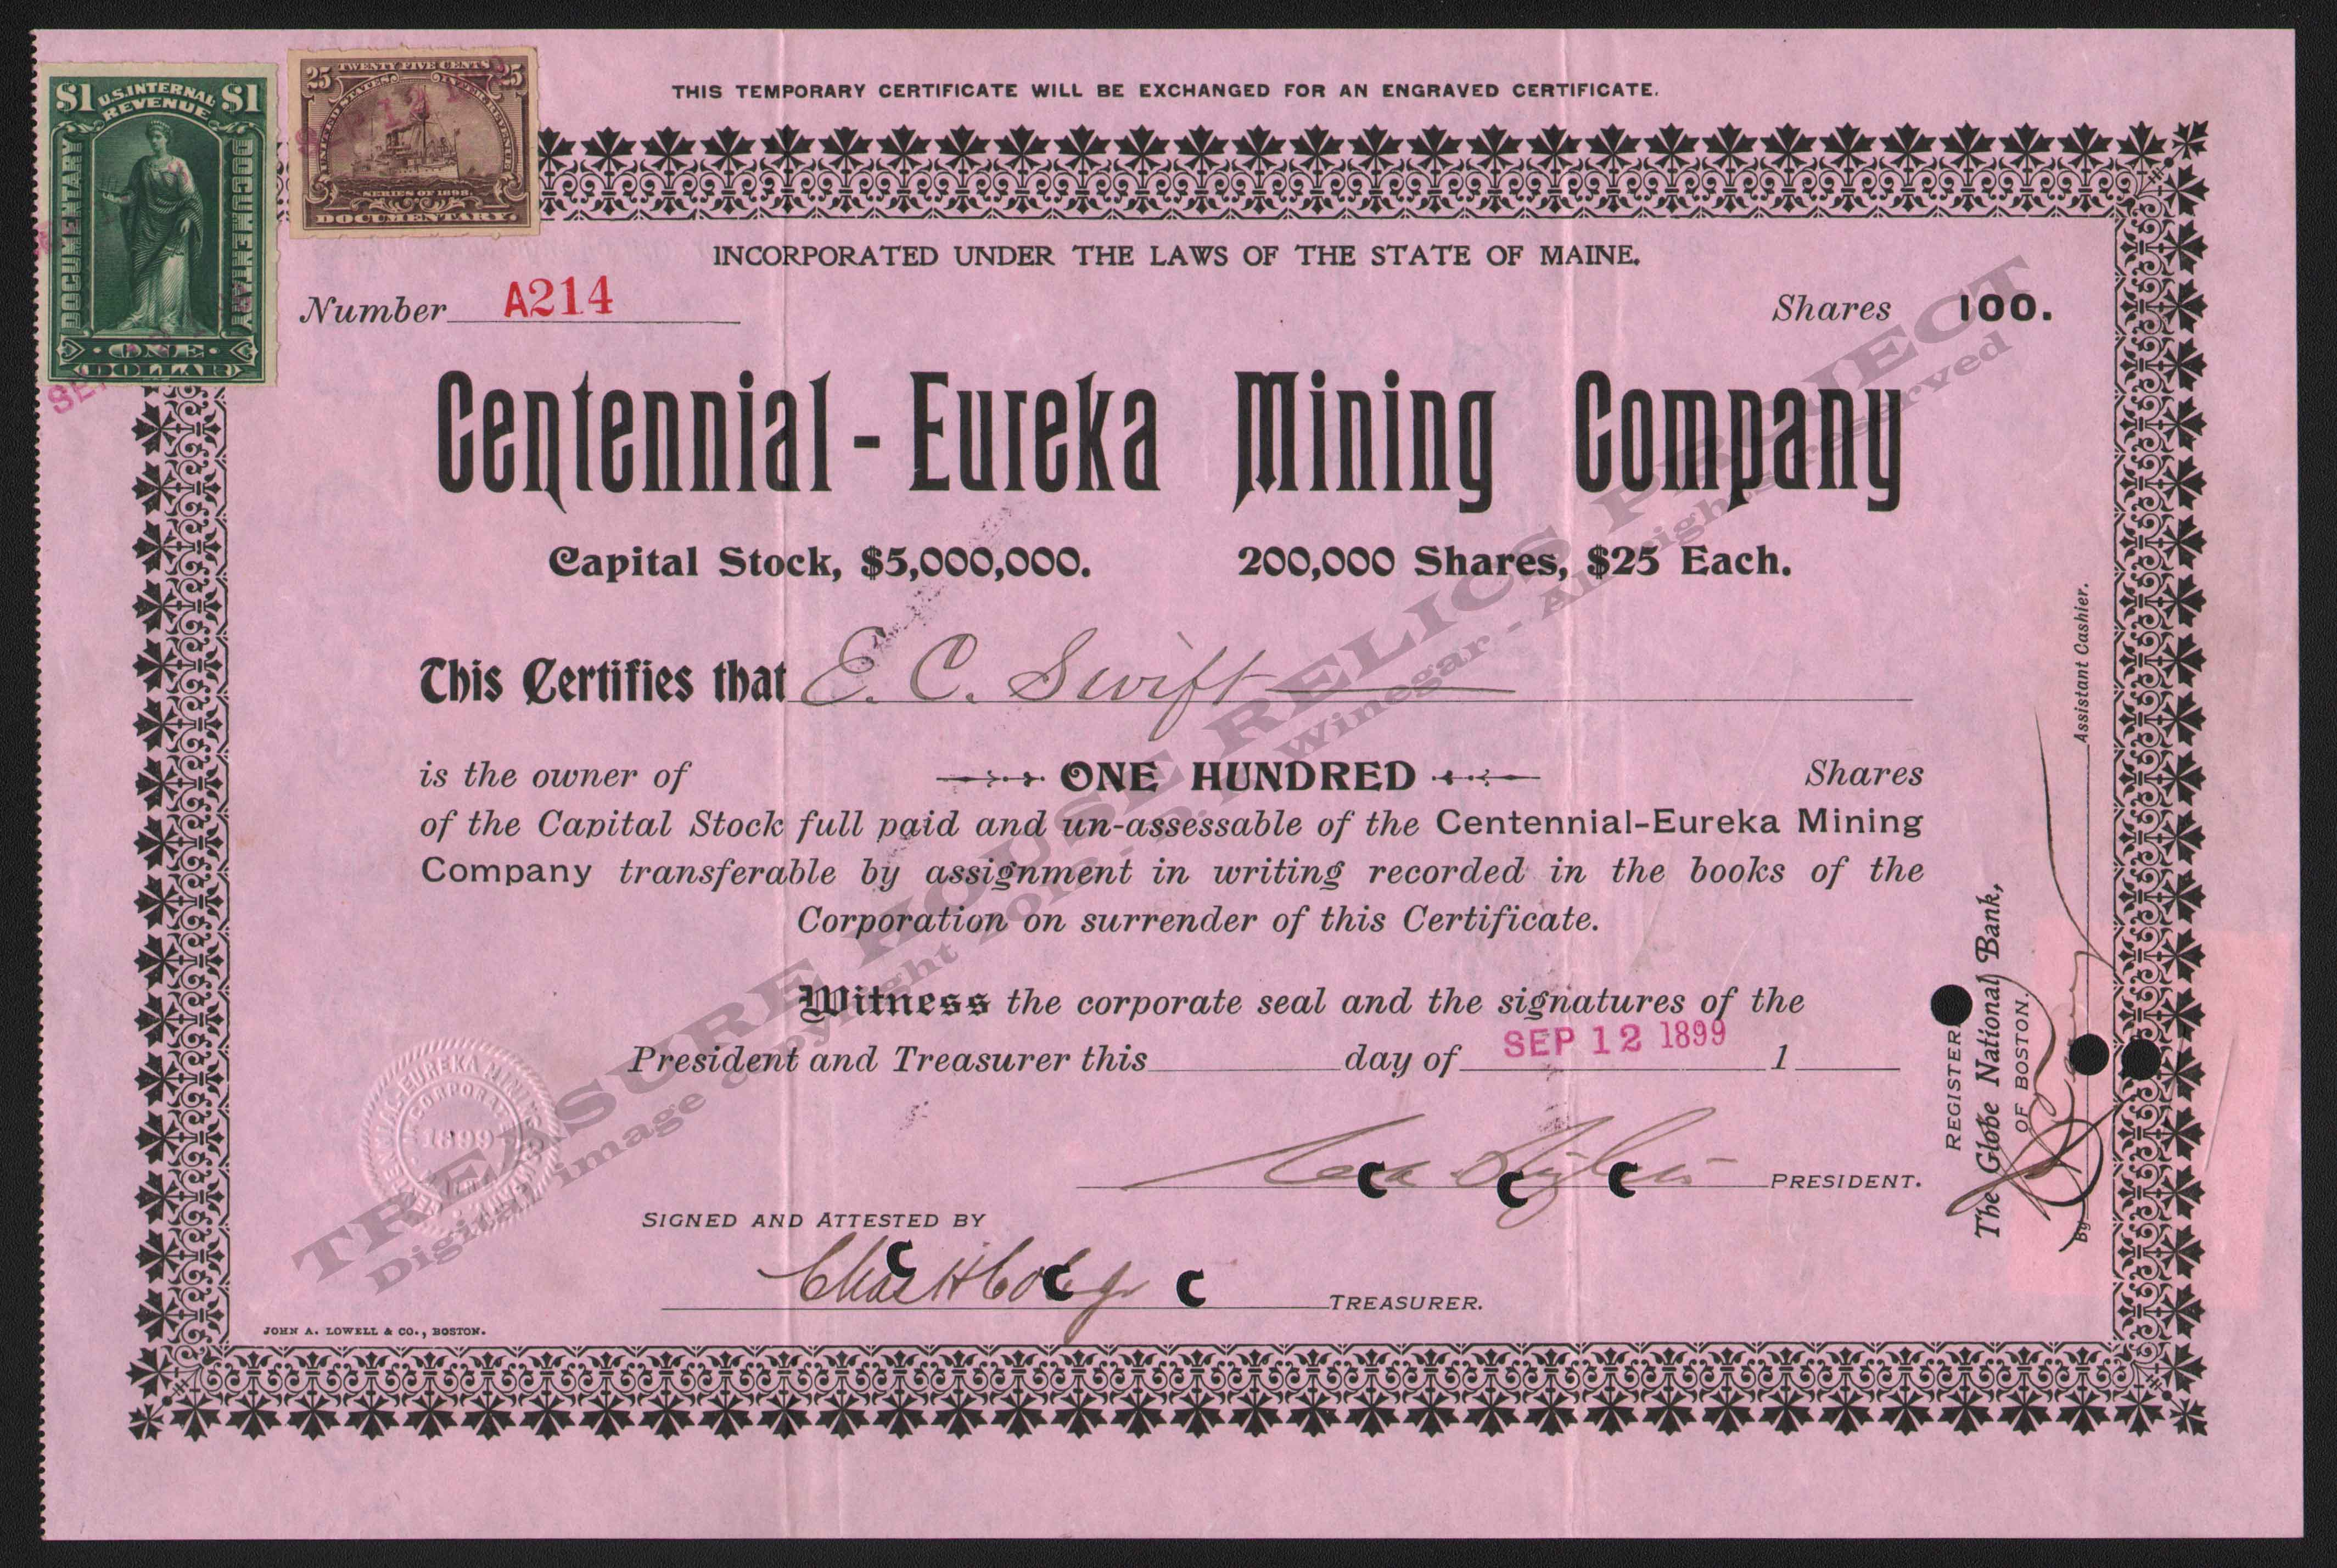 LETTERHEAD/CHICAGO_MERCUR_MINING_CO_31_1896_MERCUR_KIRK_400_CROP_EMBOSS.jpg